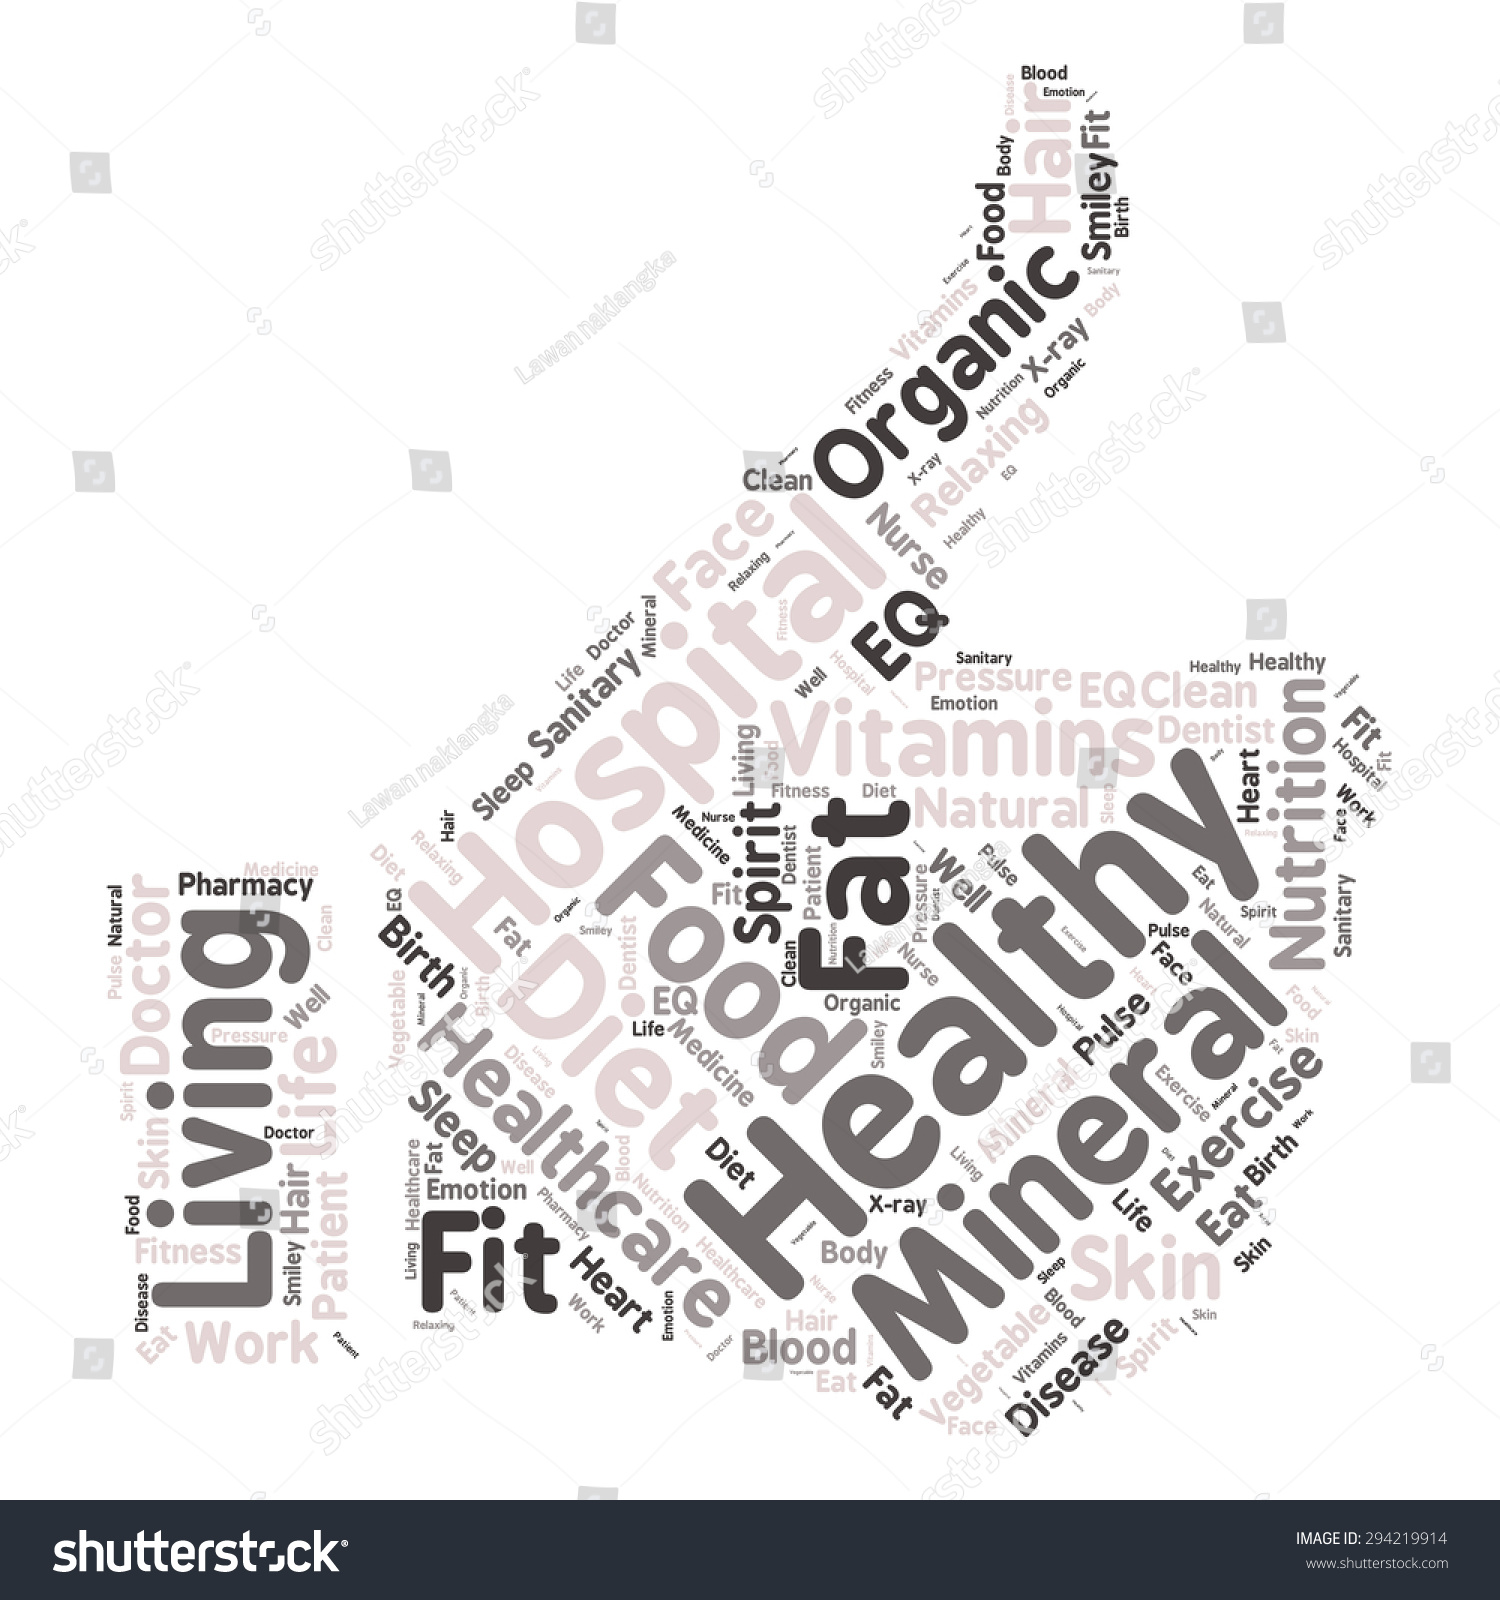 concept or conceptual abstract word cloud on white background as